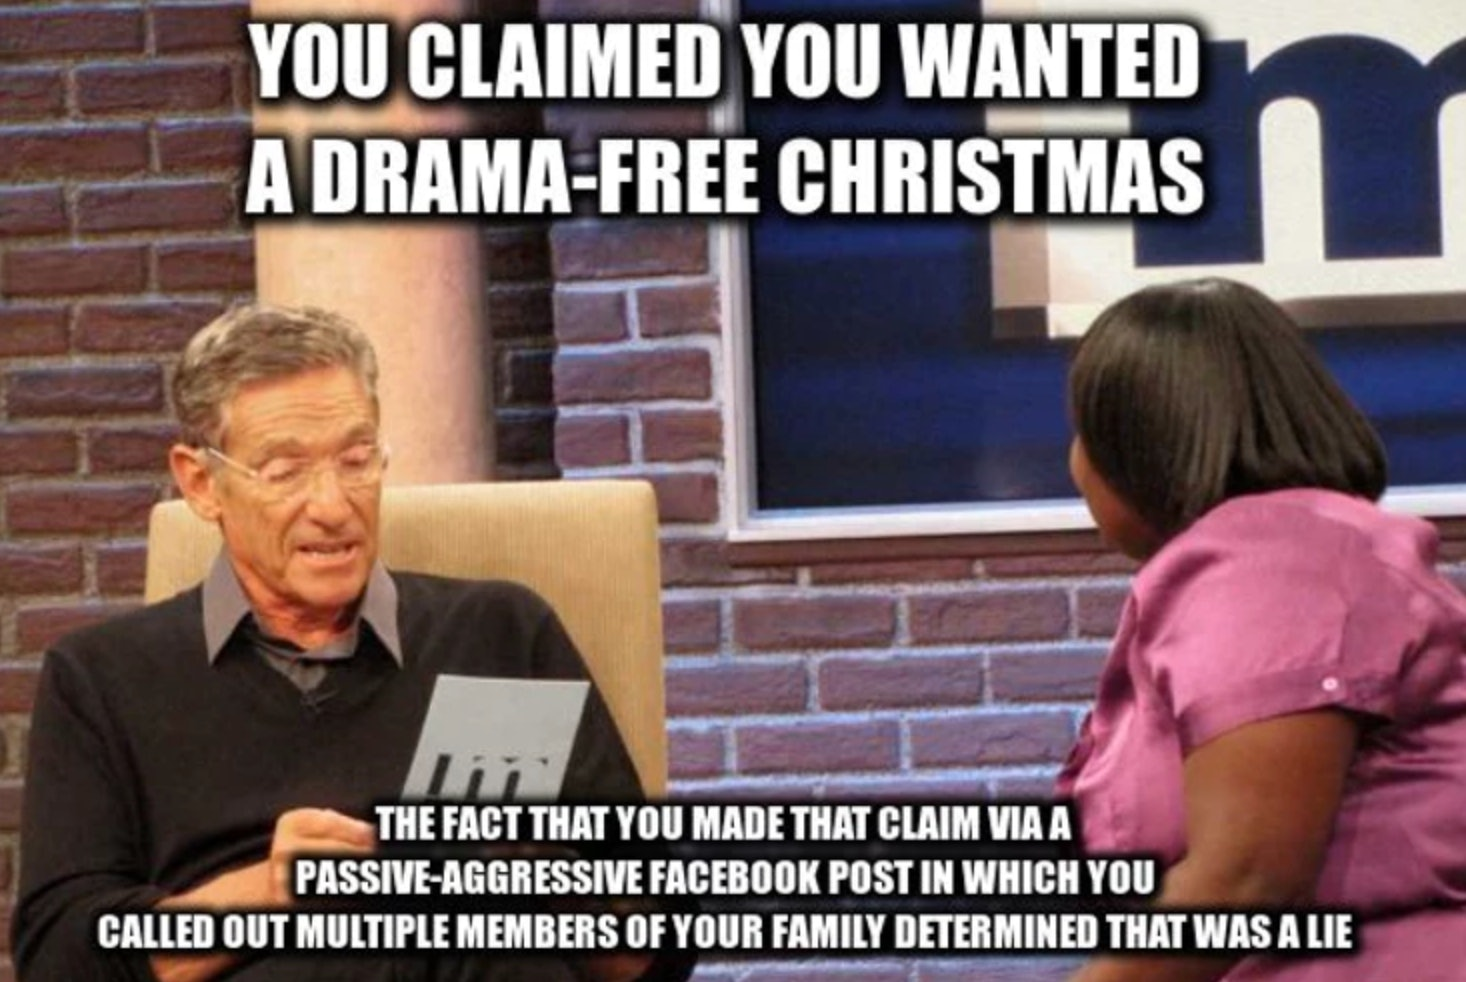 b12bfba3 46a2 4478 88b1 d4f9d8e40e4a screen shot 2017 12 01 at 45359 pm 13 family memes for the 2017 holidays that'll give everyone a good